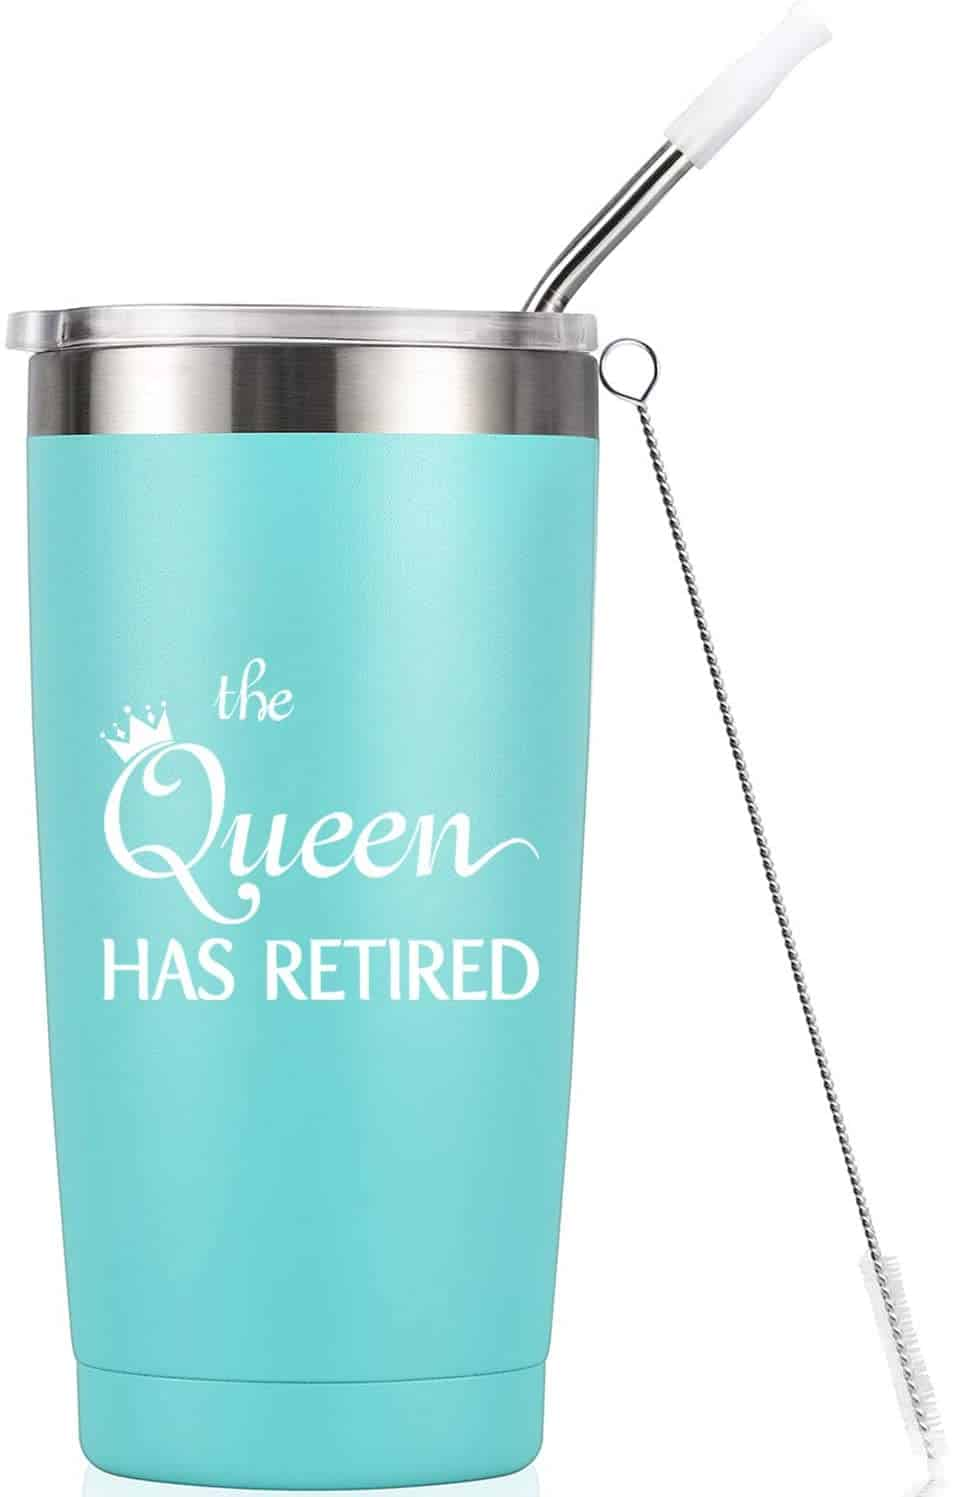 This Mug Tumbler is the perfect retirement gift for women